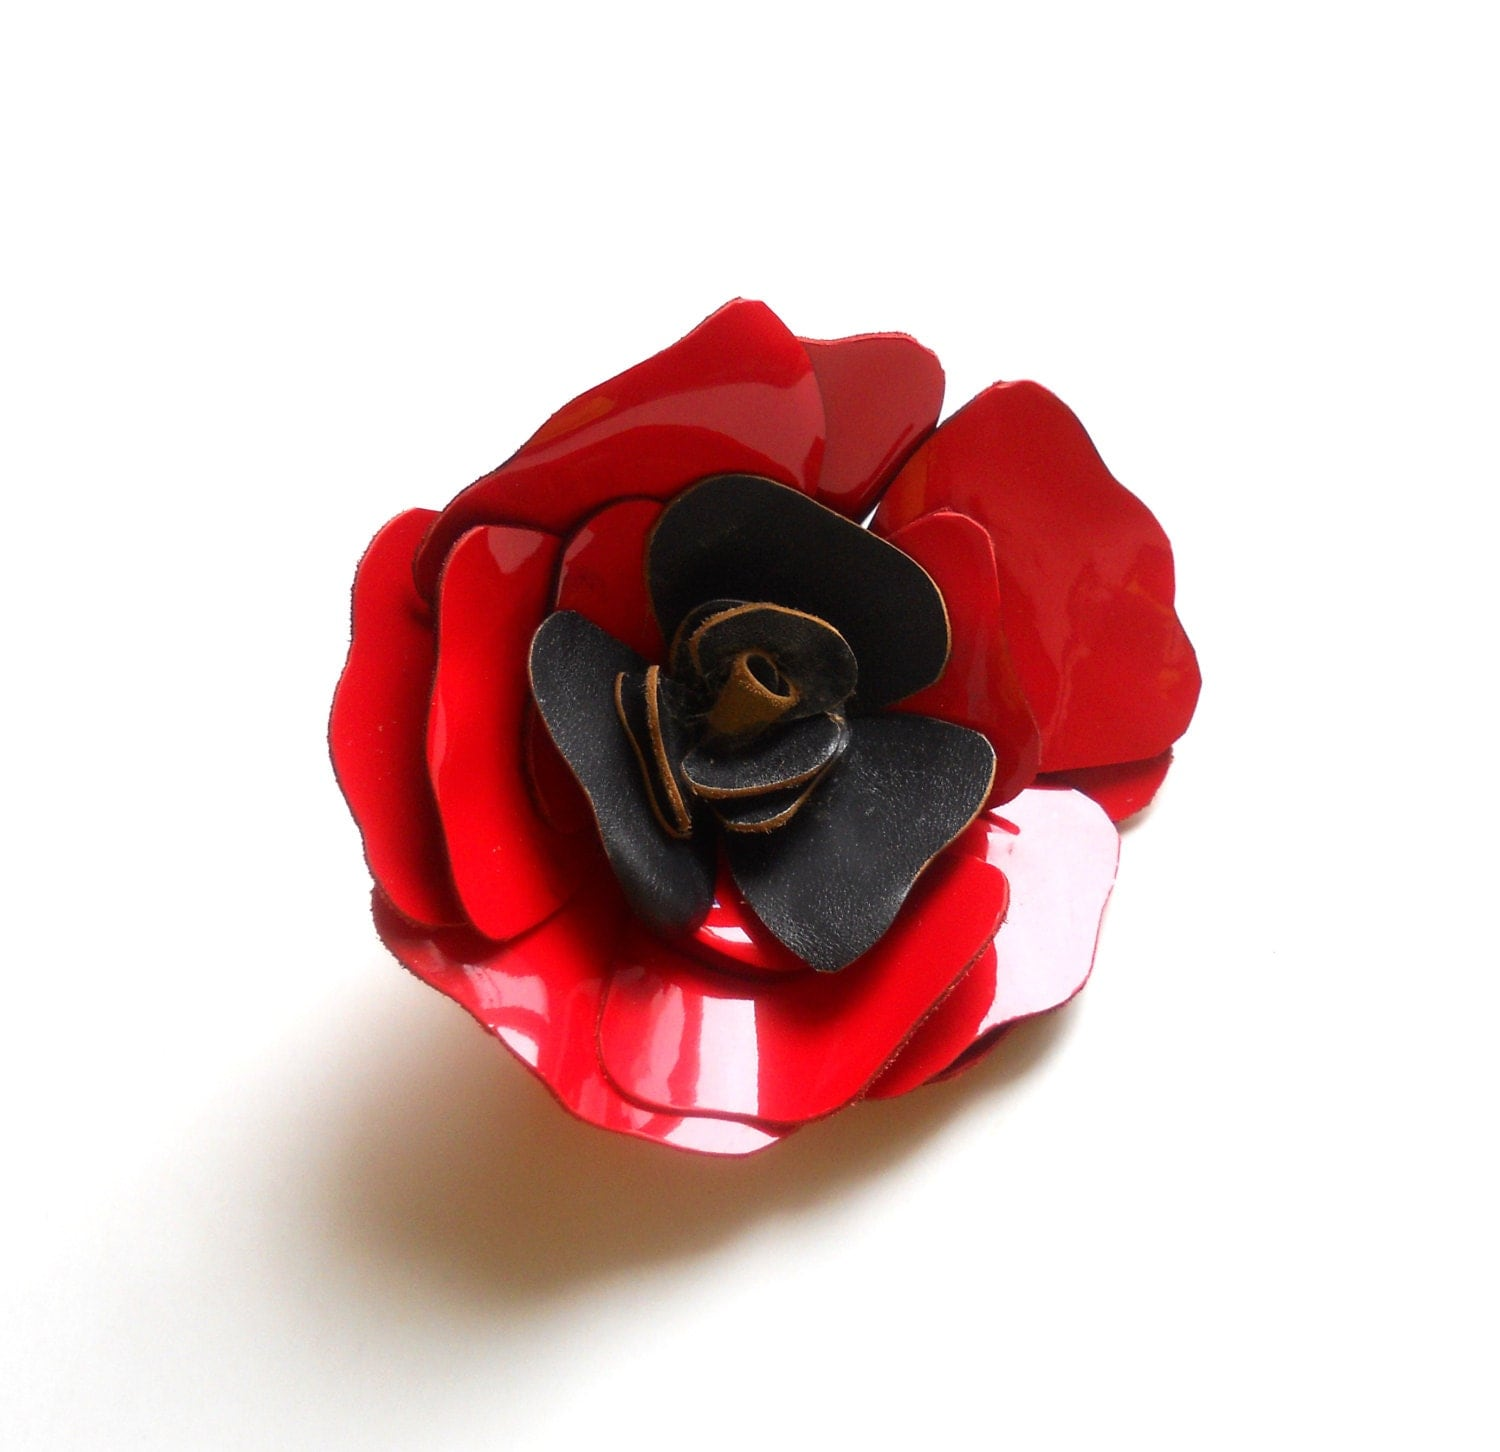 Leather Rose Brooch in Red and Black - maycily